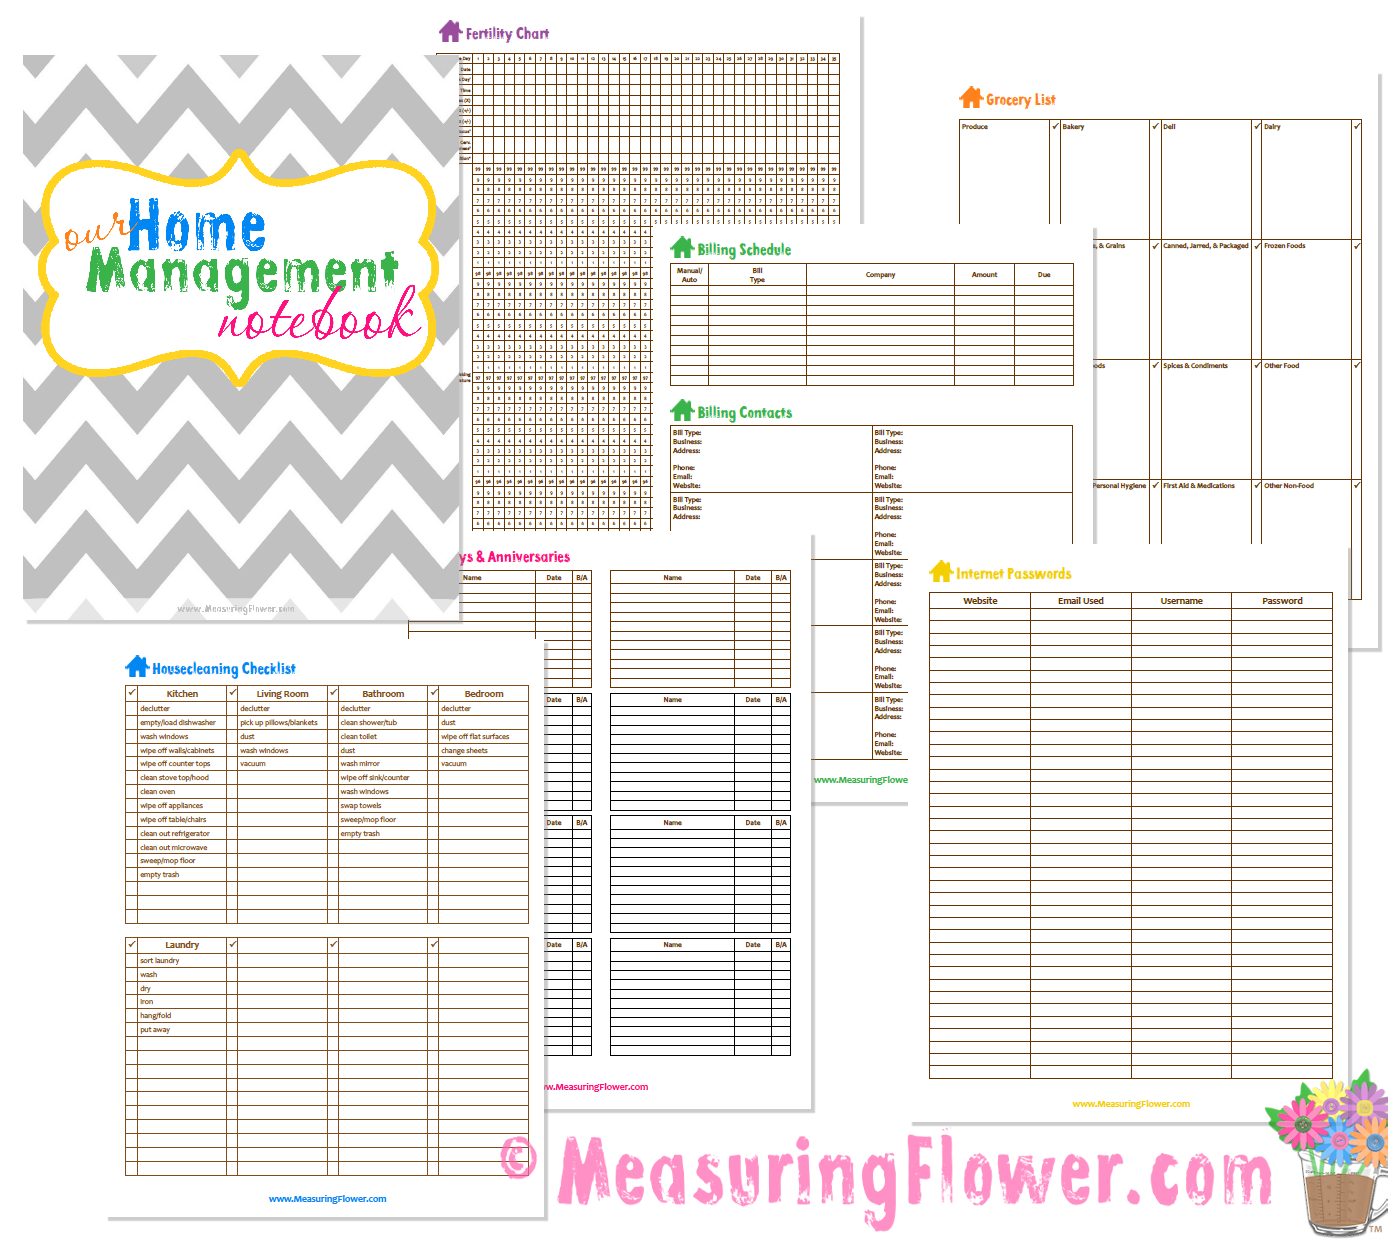 This is a picture of Crazy Household Notebook Printables